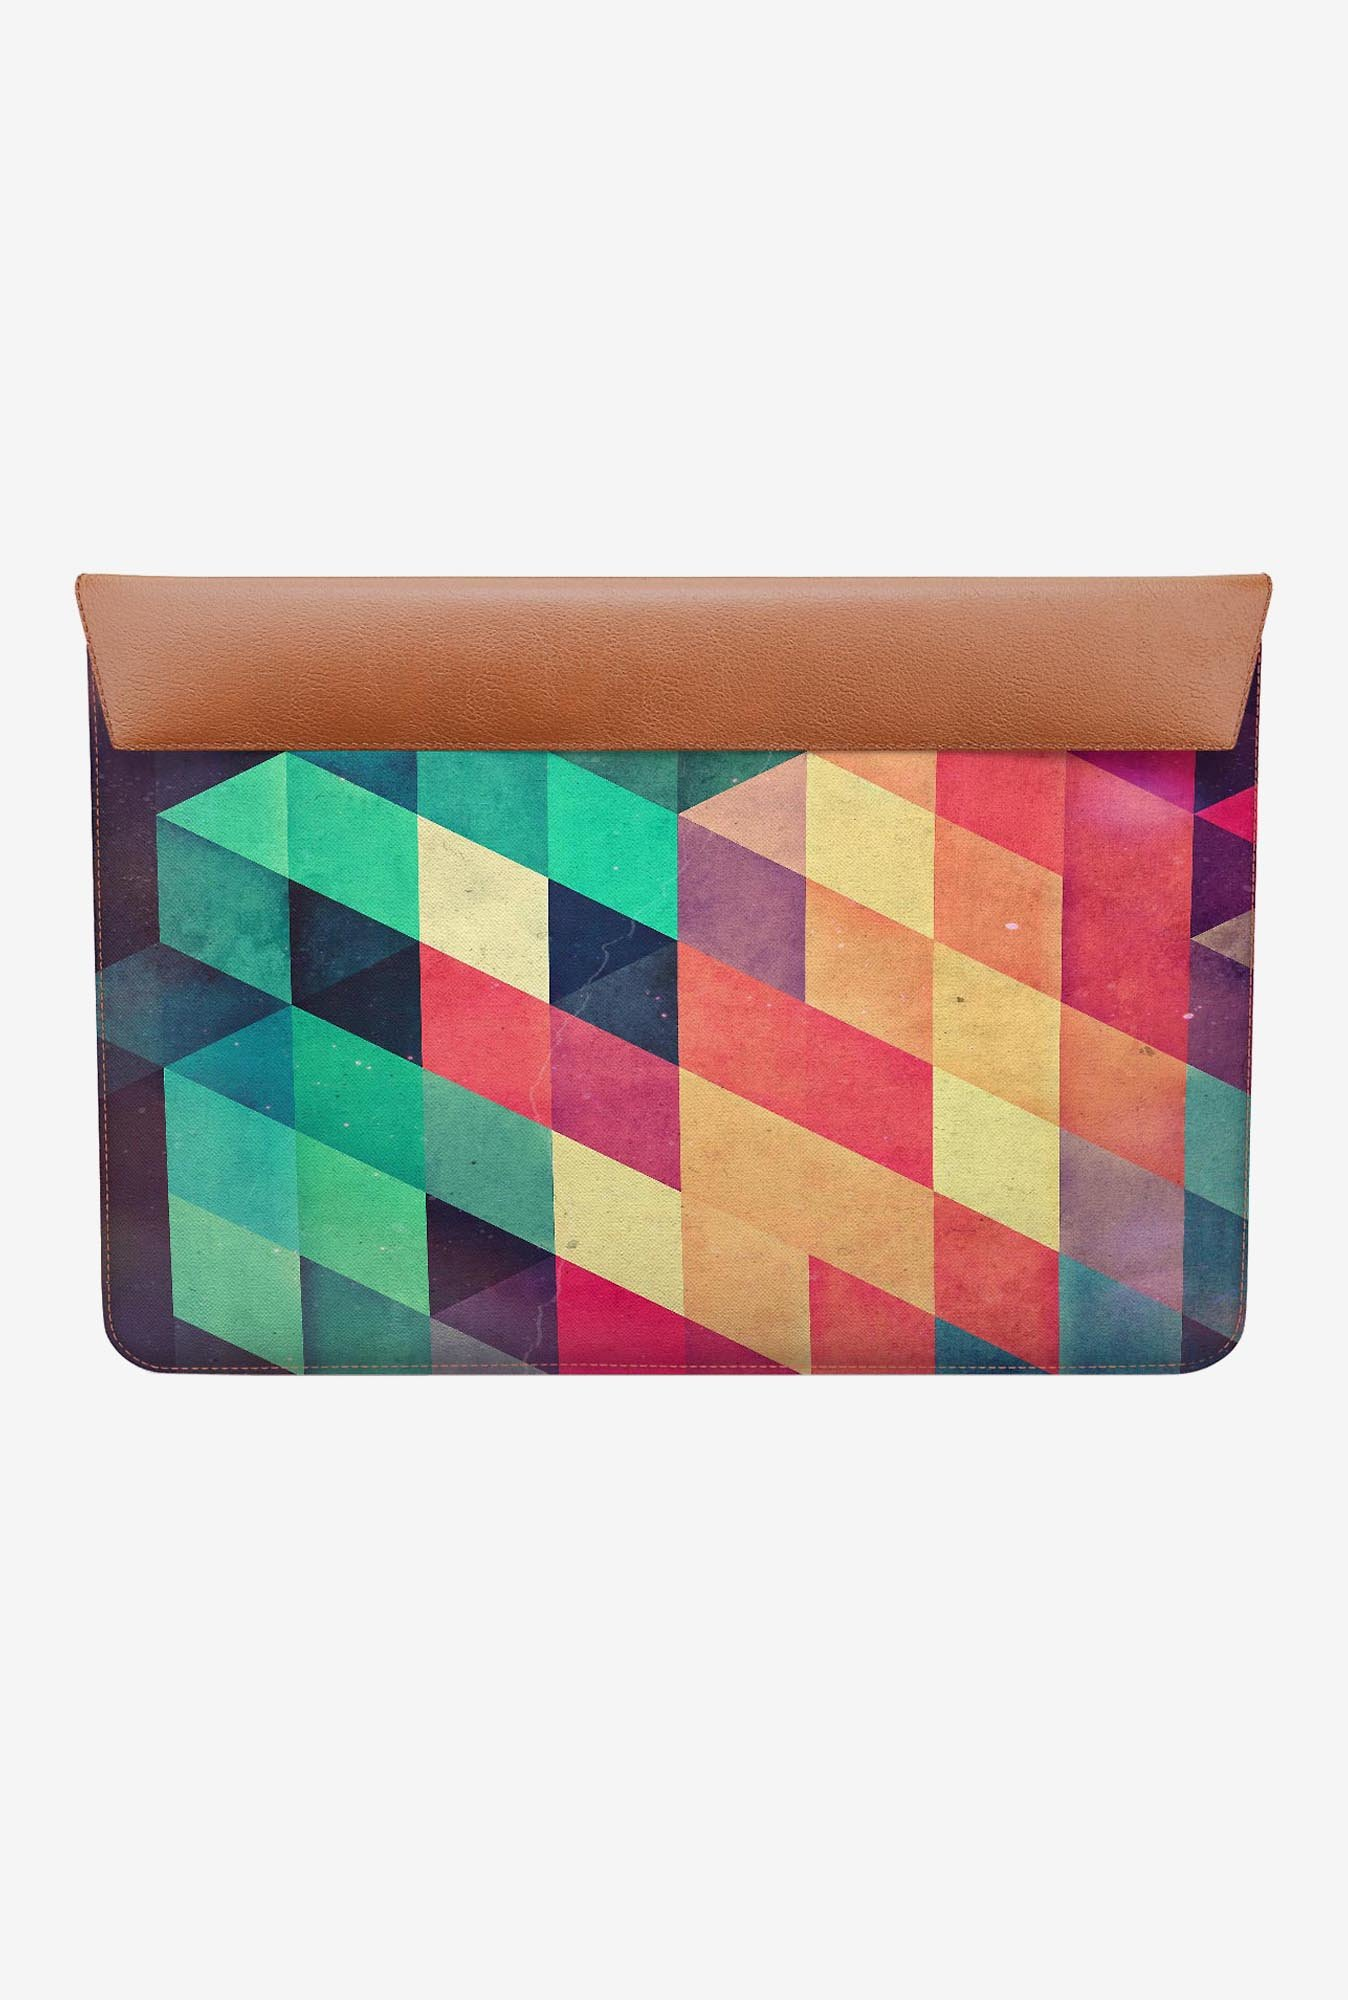 "DailyObjects Jyxytyl Macbook Air 11"" Envelope Sleeve"